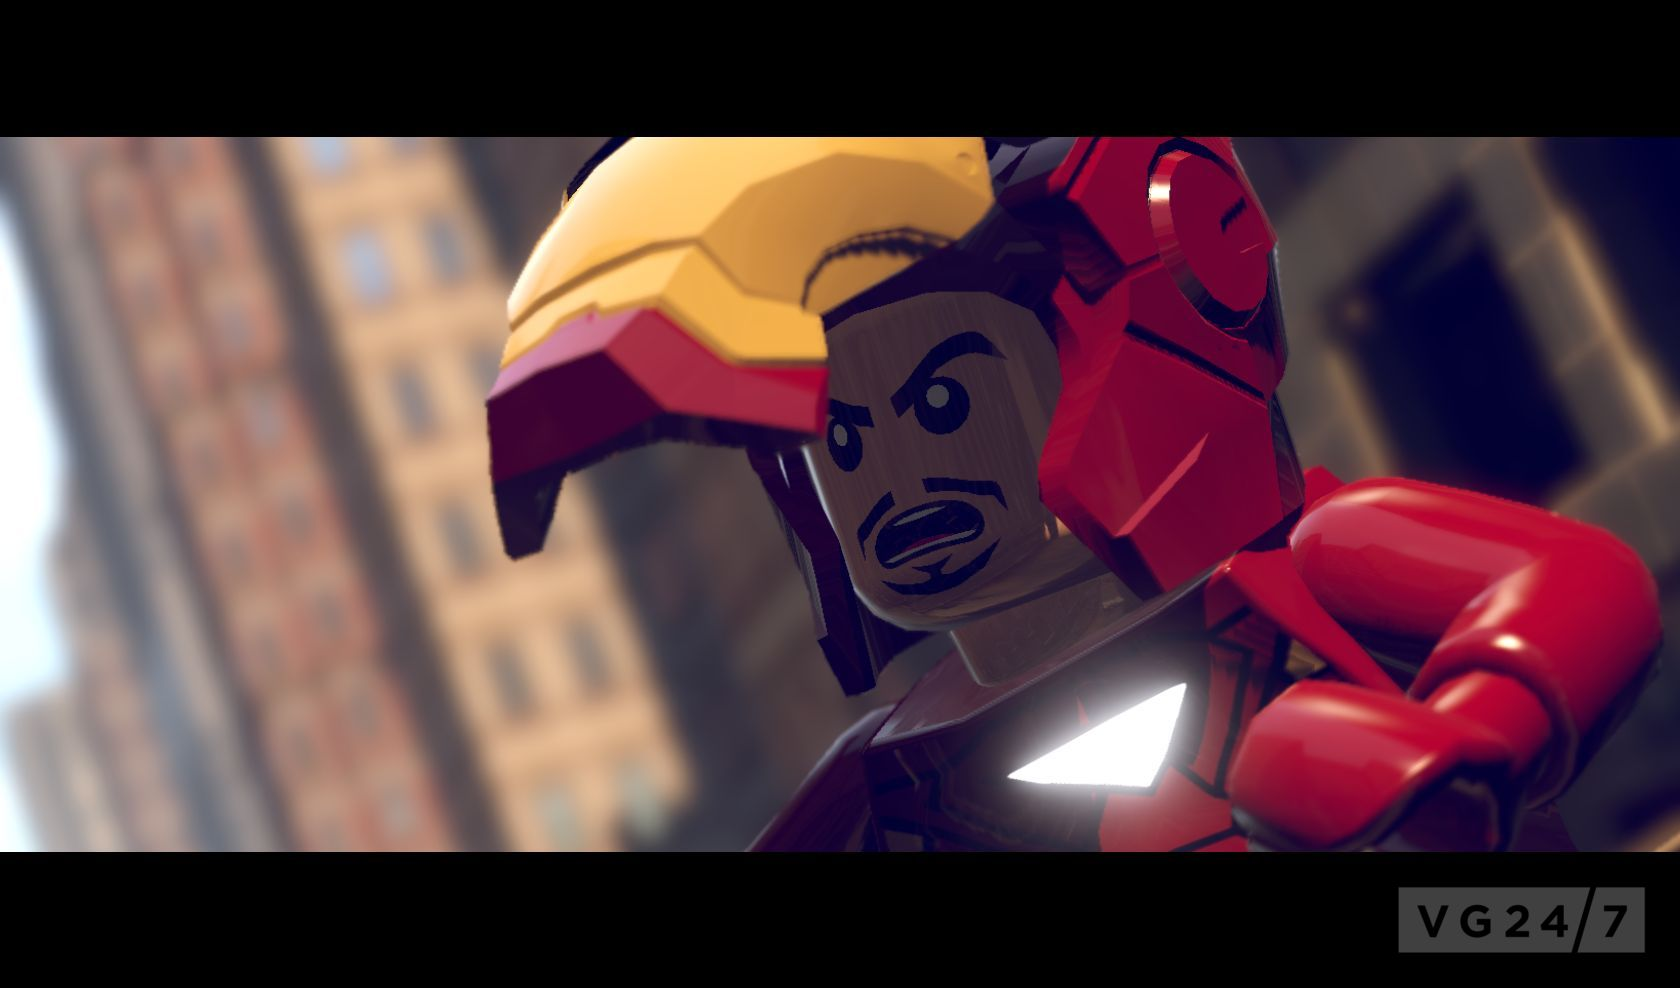 LEGO Marvel Super Heroes screenshots show an adorable Iron Man - VG247